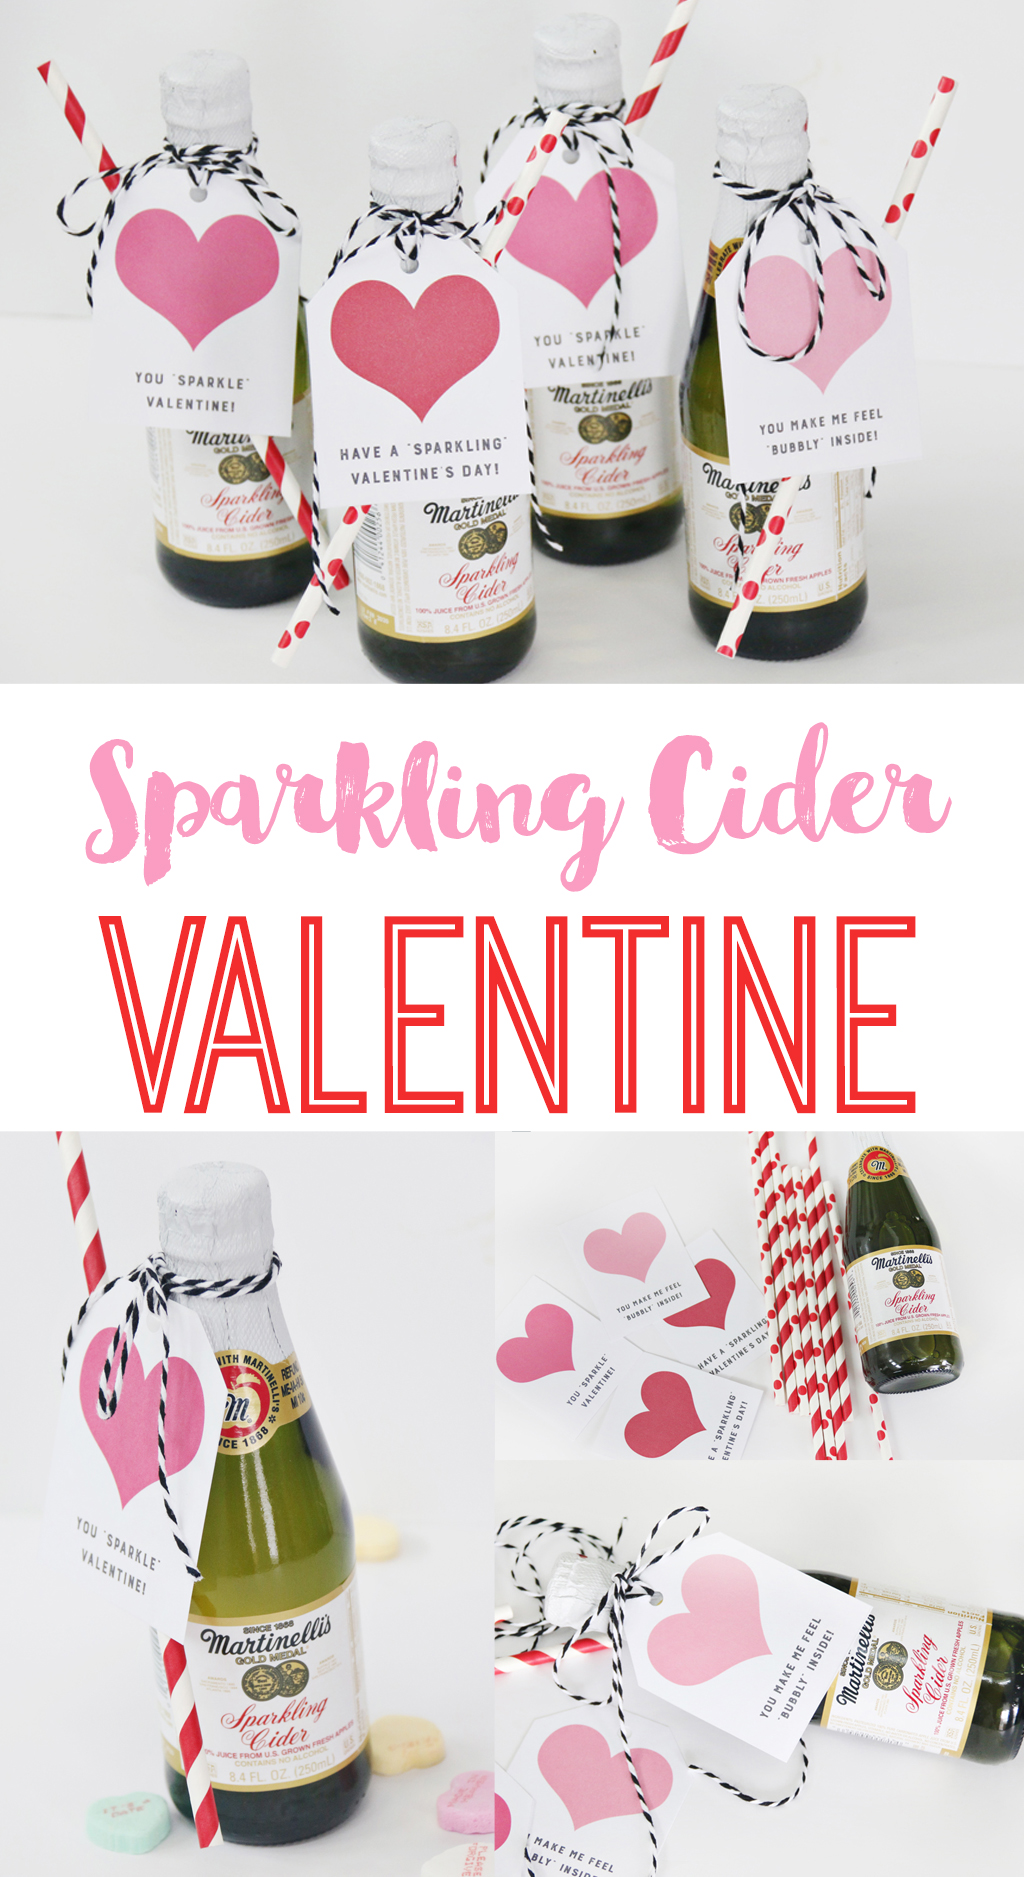 Martinelli's Sparkling Cider Valentine's Day Party